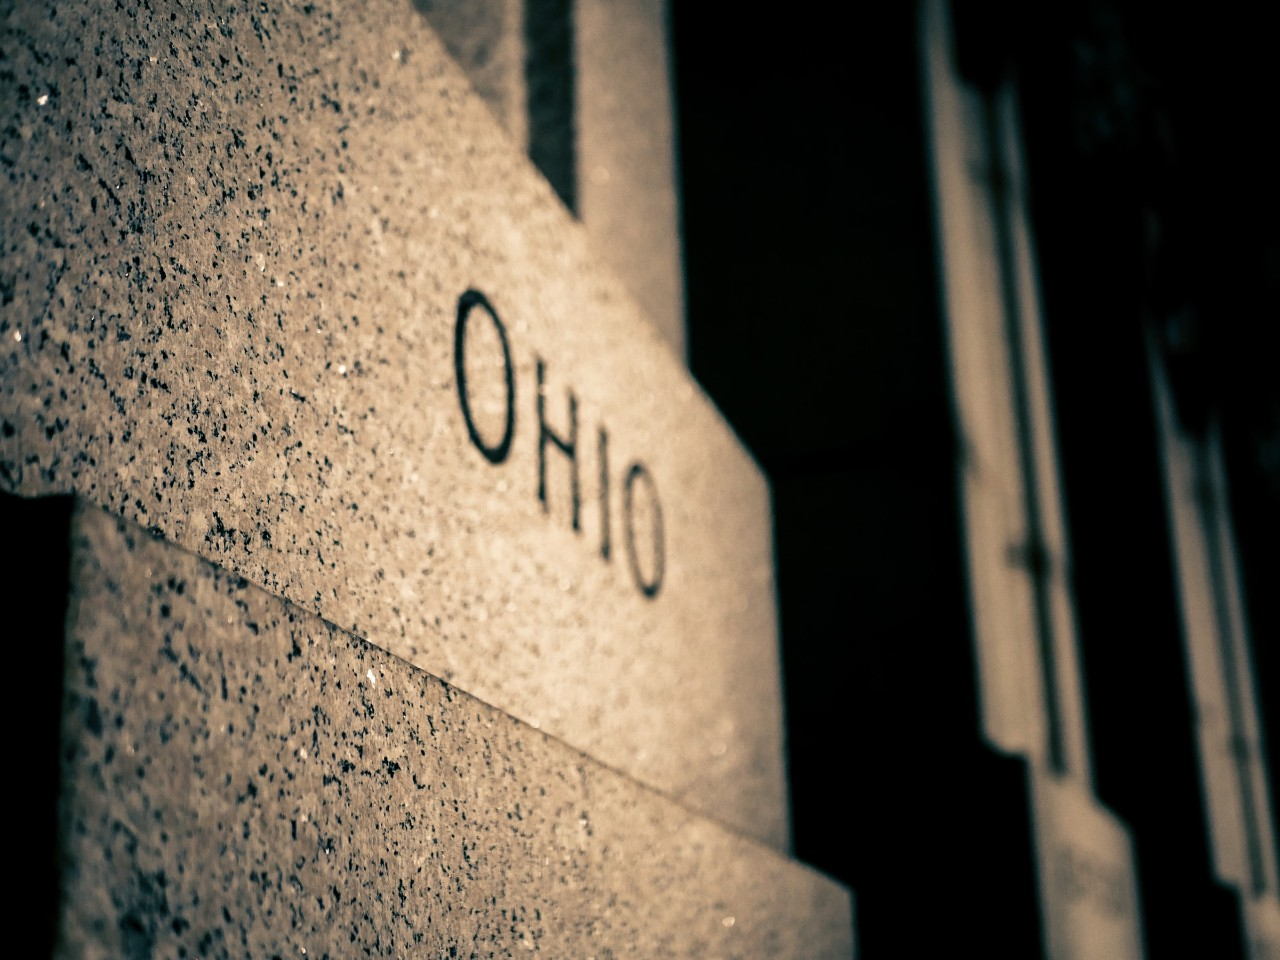 Photo of the word Ohio engraved into stone wall